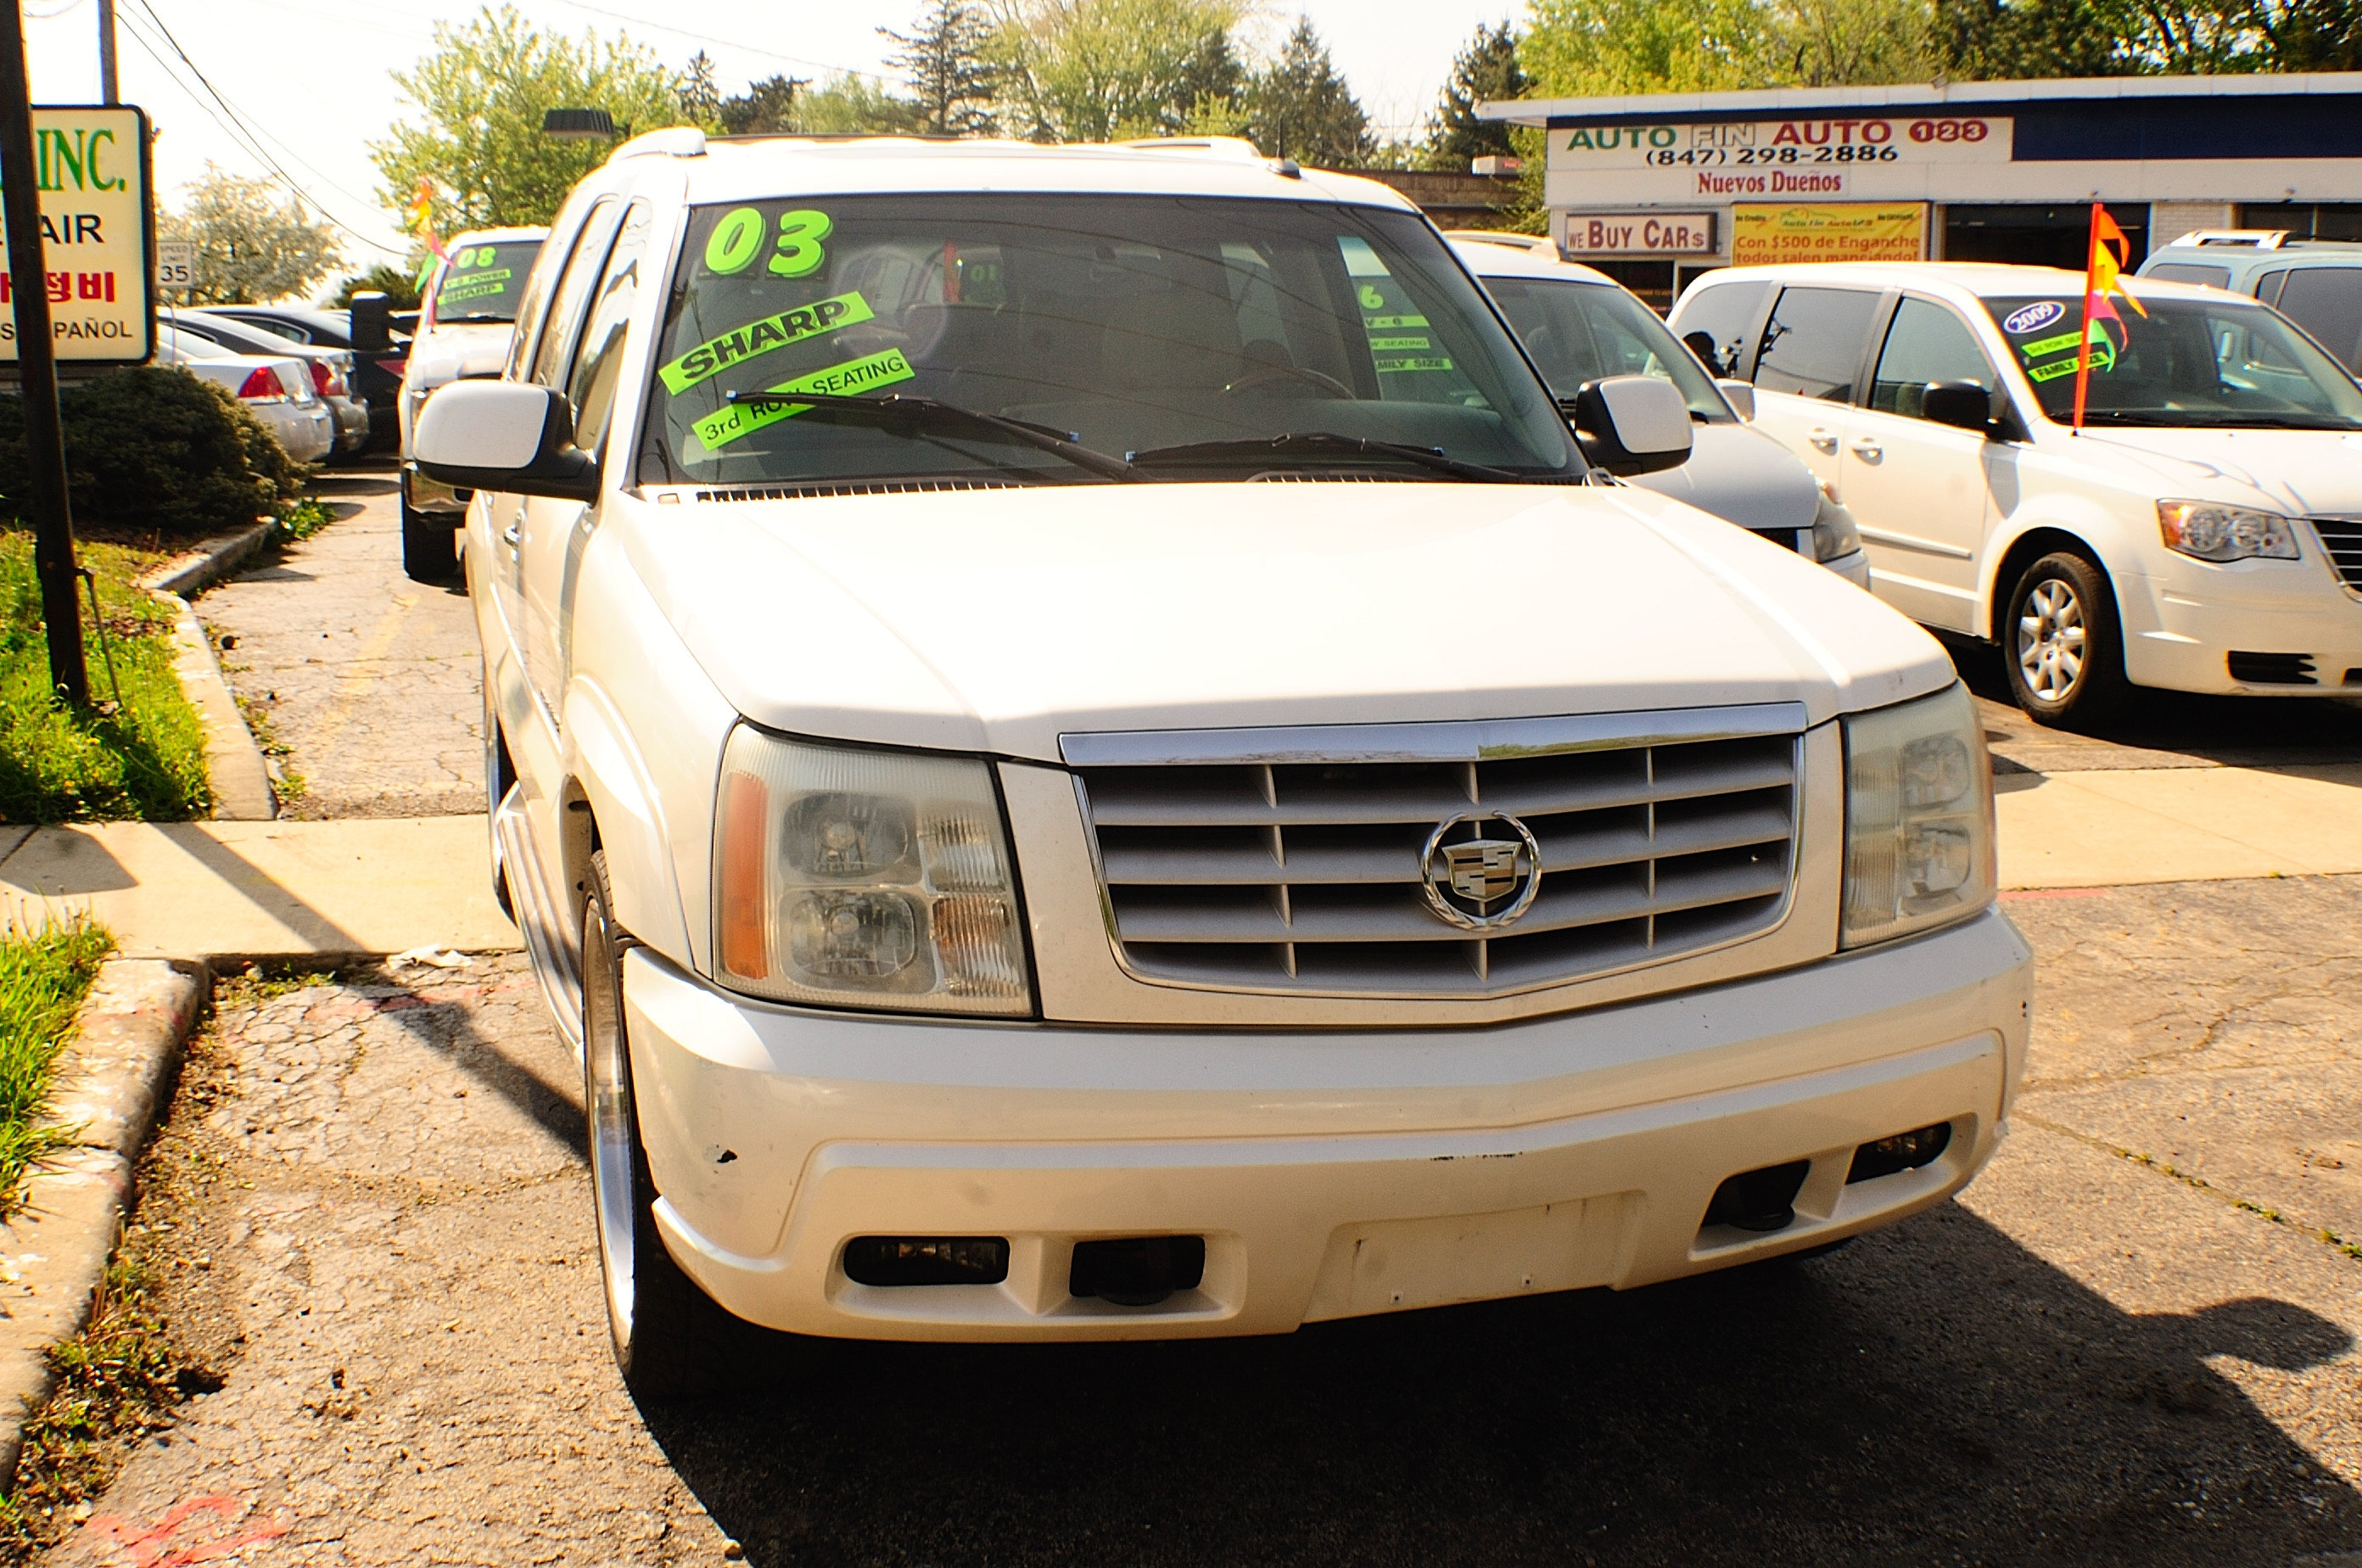 2003 Cadillac Escalade White TV Used SUV car sale Buffalo Grove Bollingbrook Carol Stream